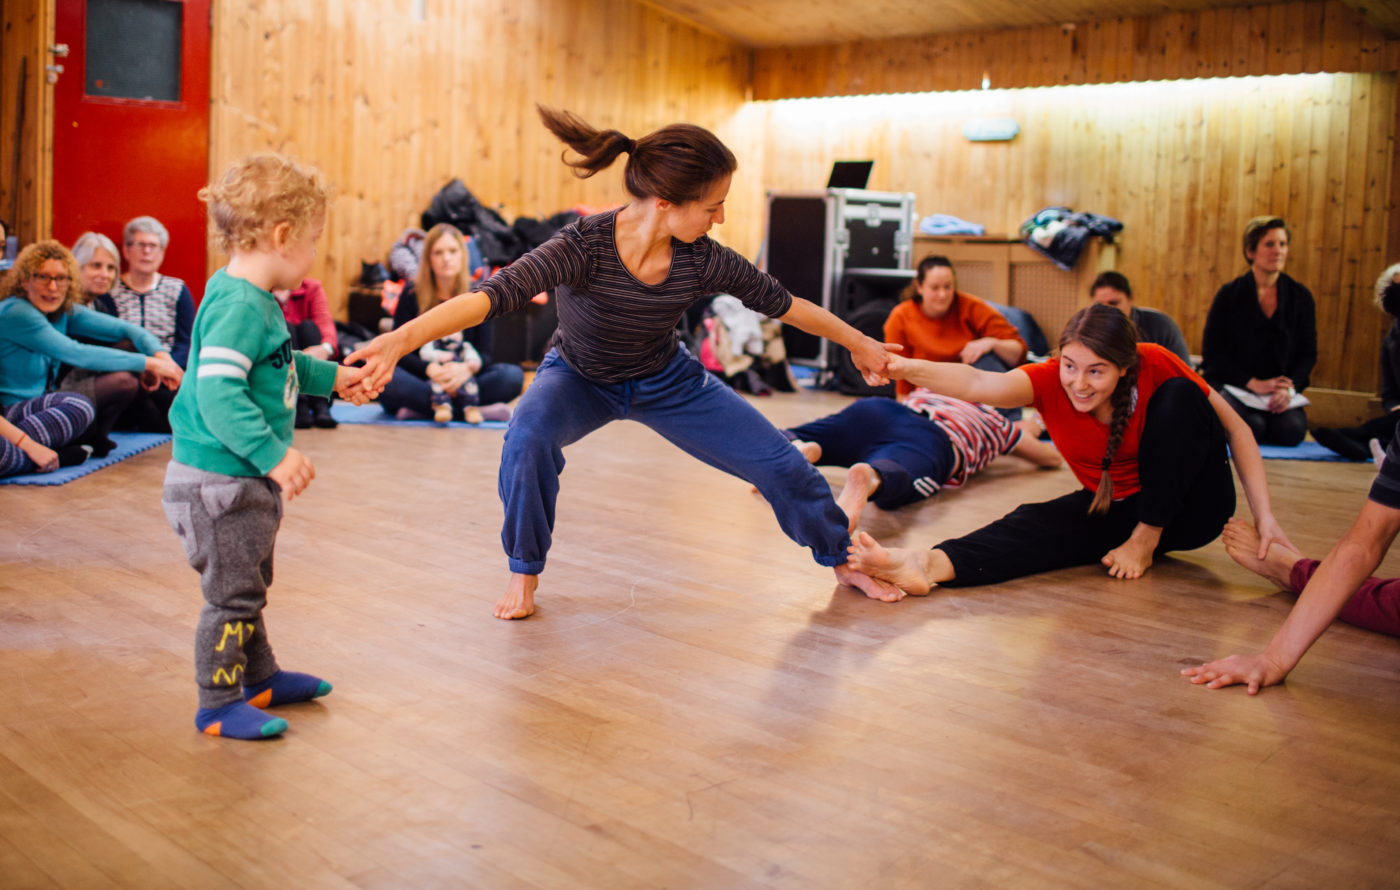 Women is dancing in the centre of a room holding hands with a child and an adult. Audiences sit around the perimeter of the room.